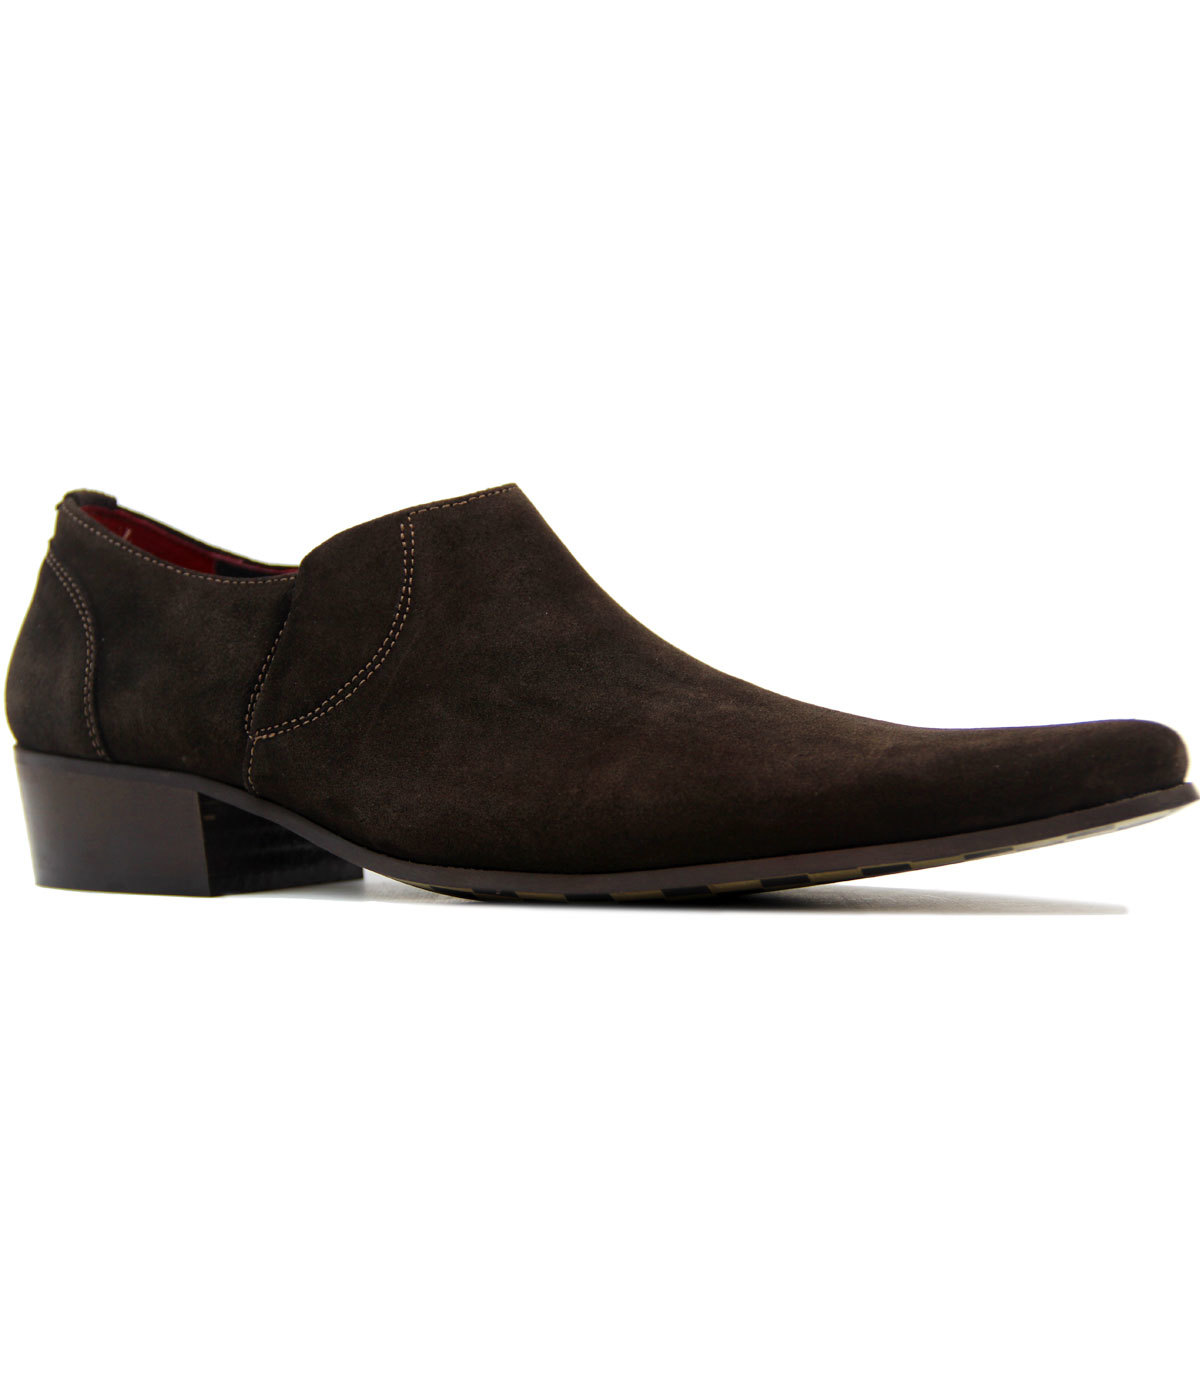 Strummer DELICIOUS JUNCTION Mod Suede Cuban Shoes